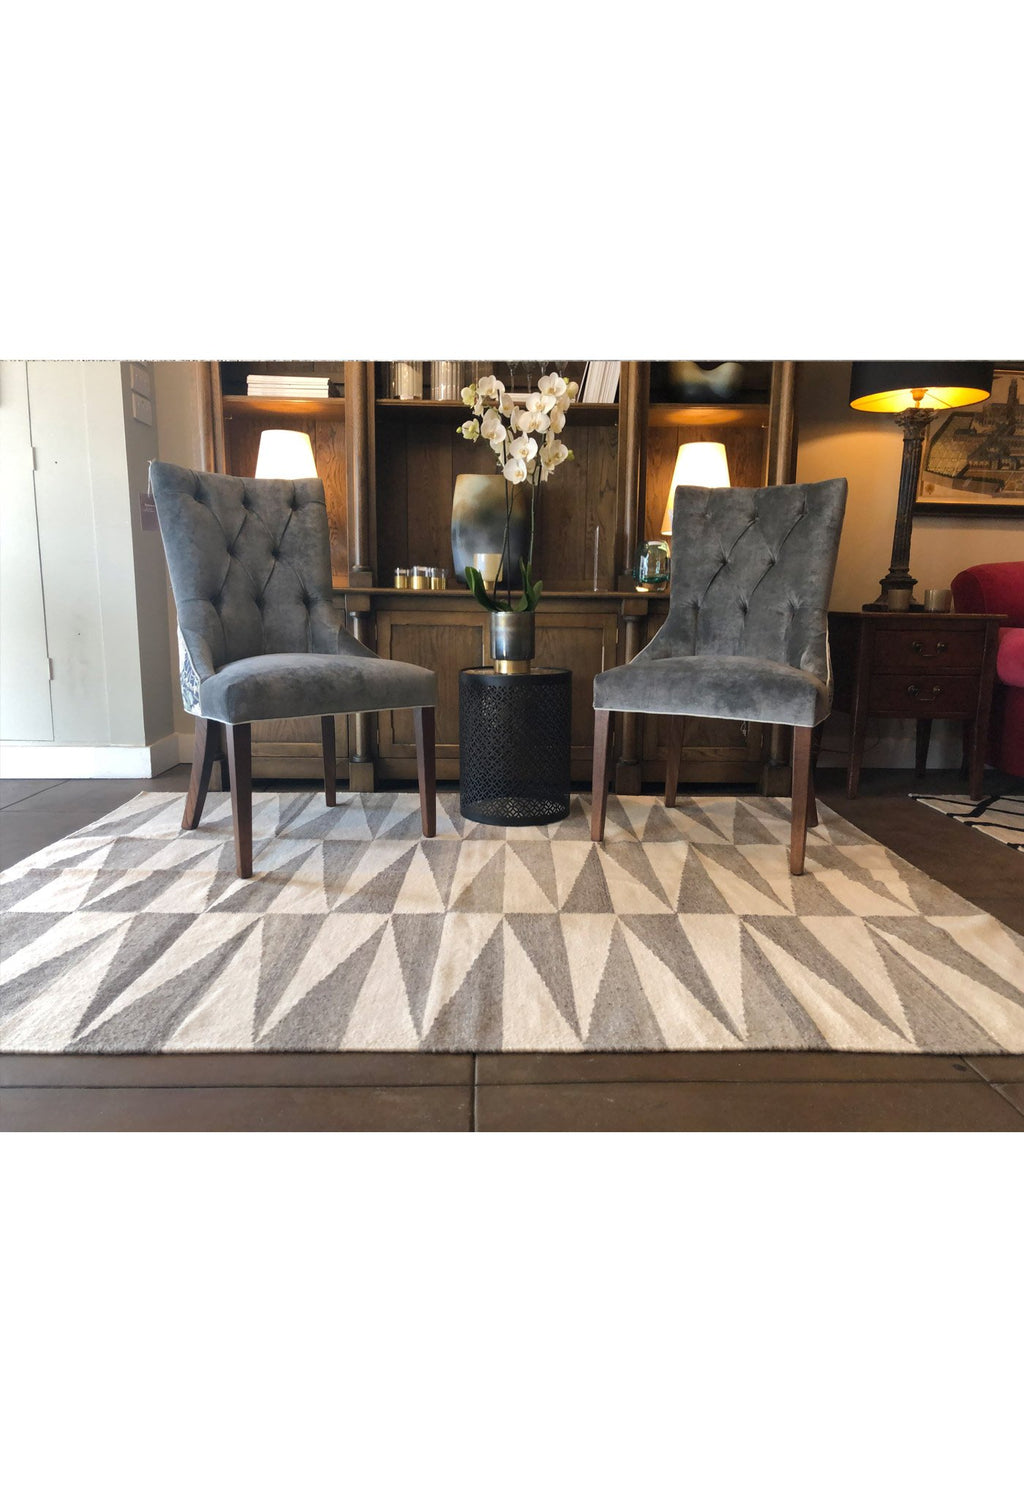 grey geometric rug in room